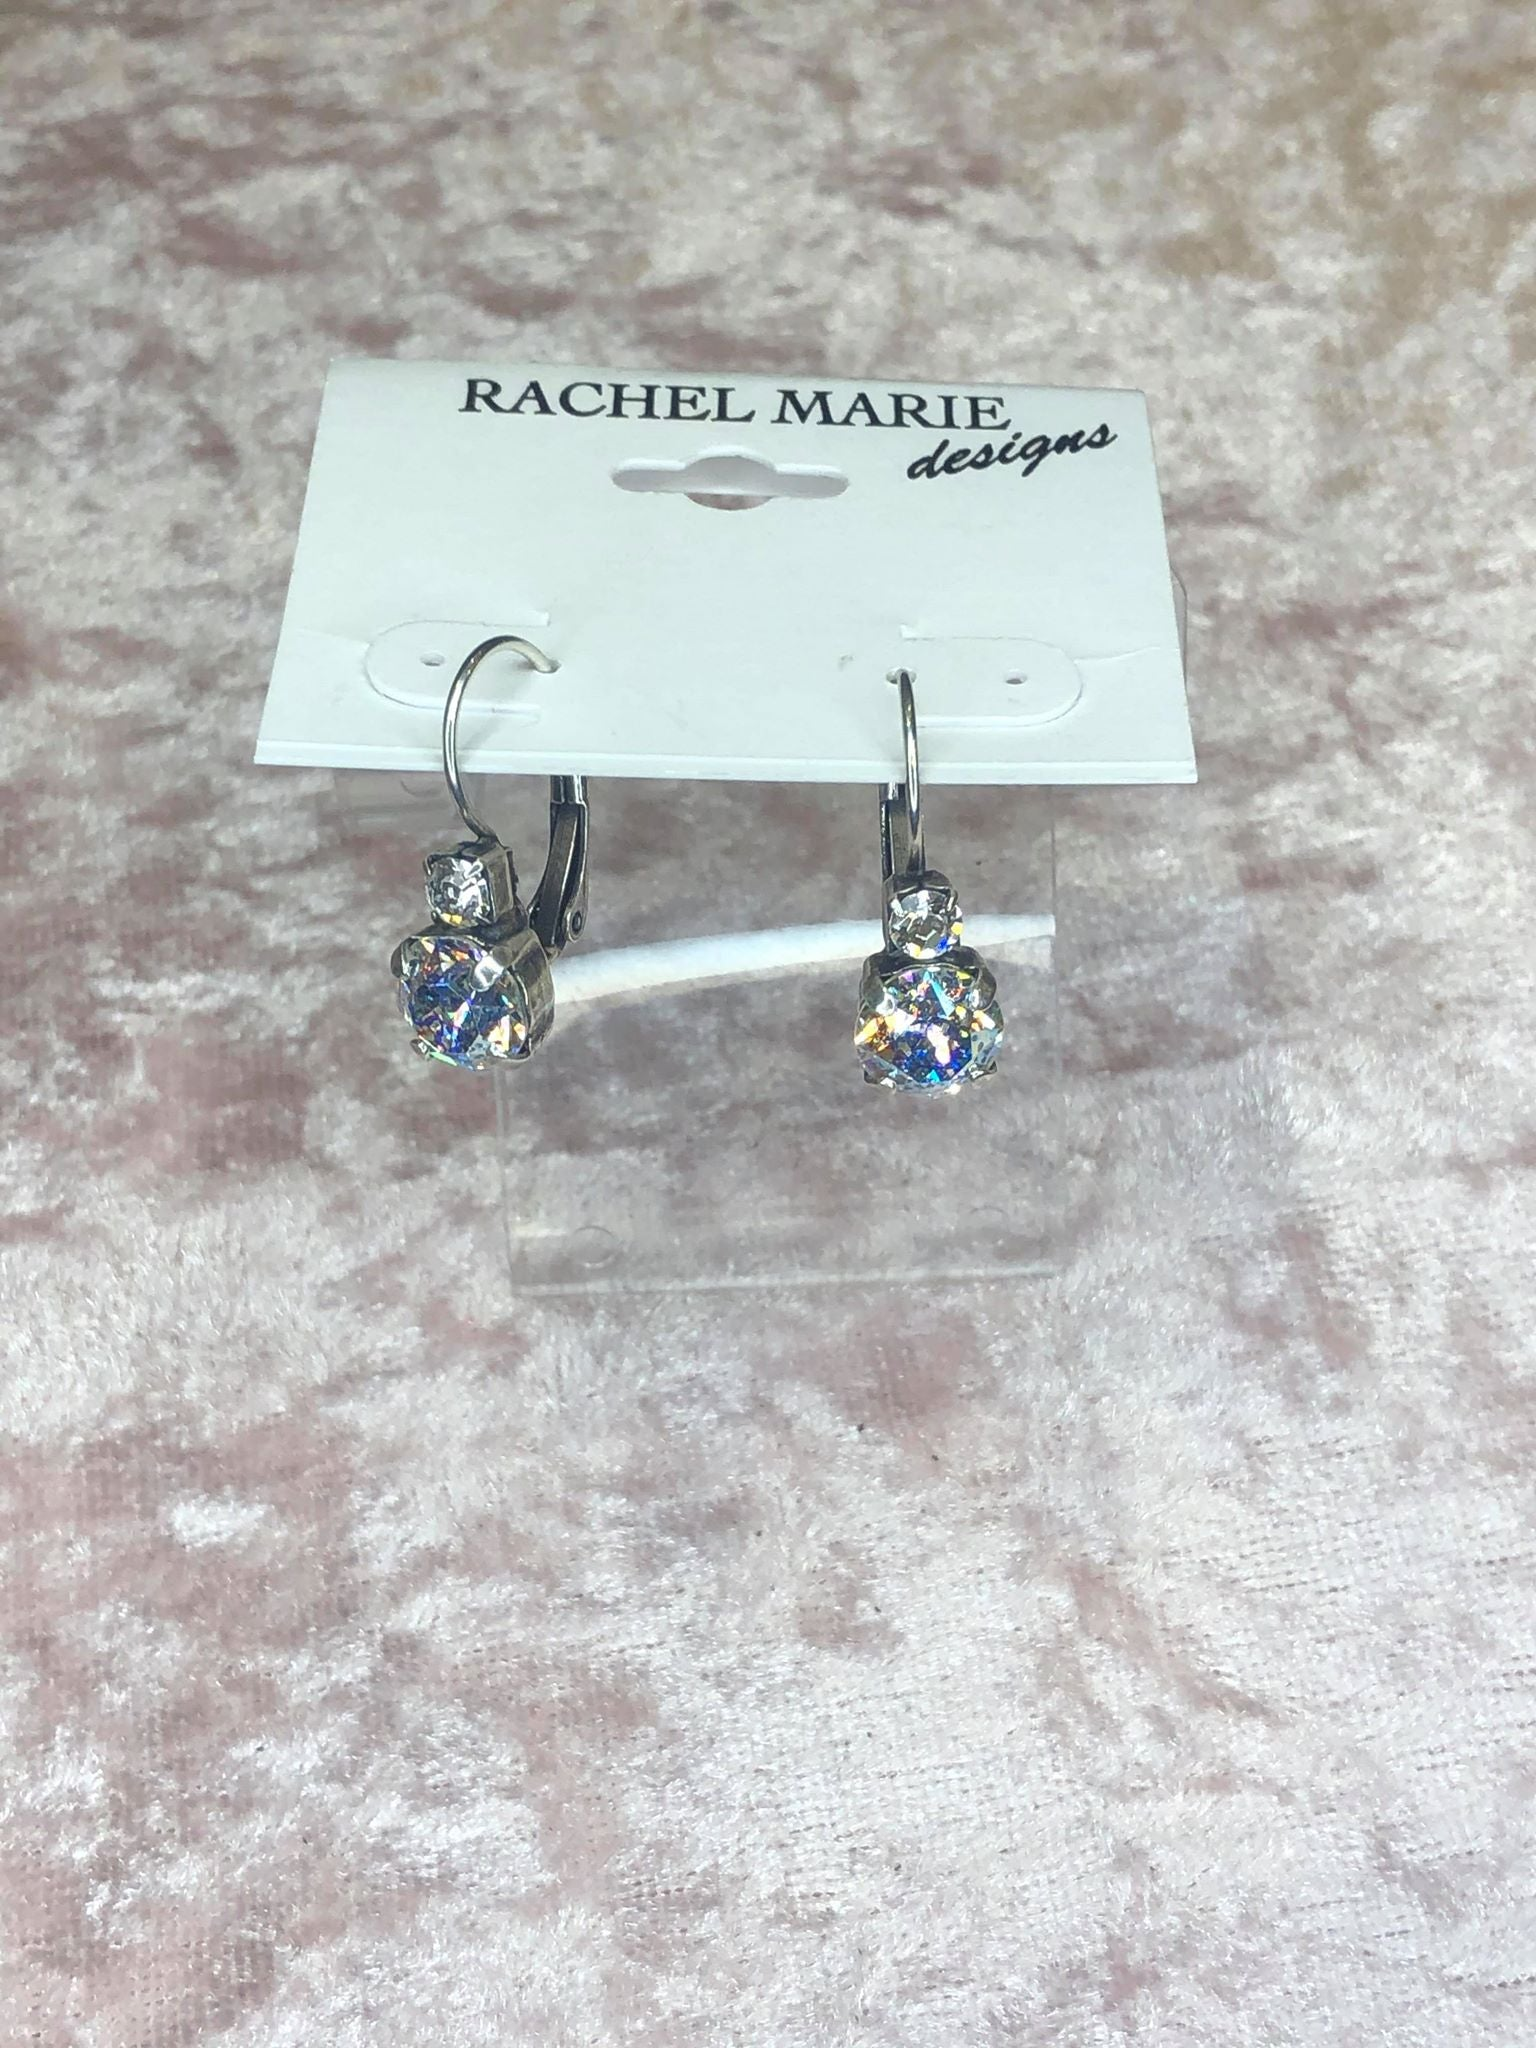 Jordan in Aurora Borealis-Earrings-Rachel Marie Designs-Lizzy's Pink Boutique